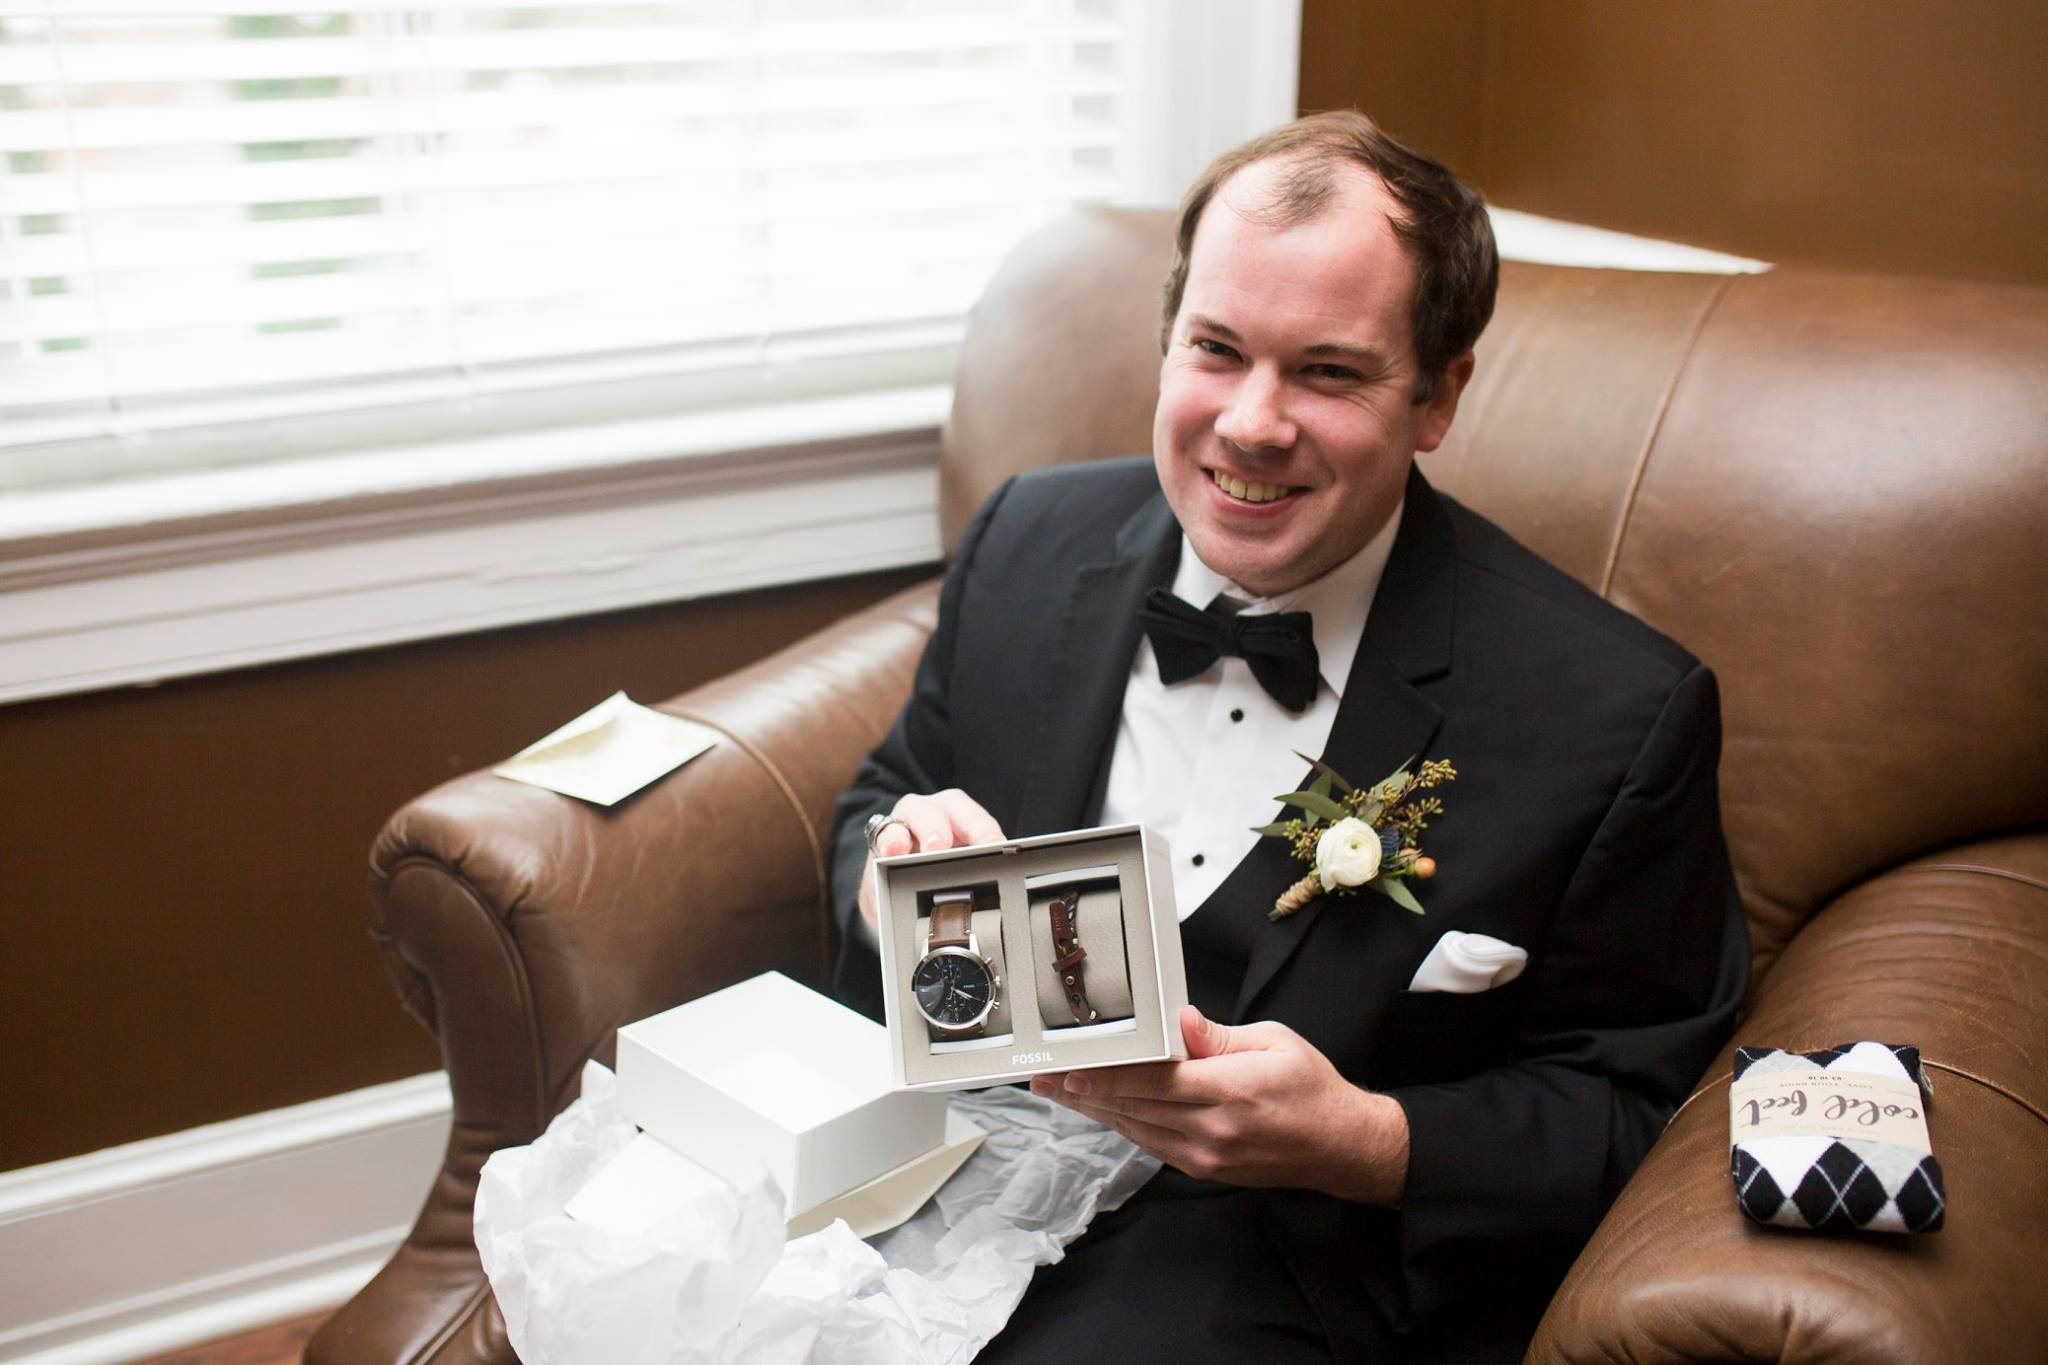 Groom showing of gift before wedding at Separk Mansion